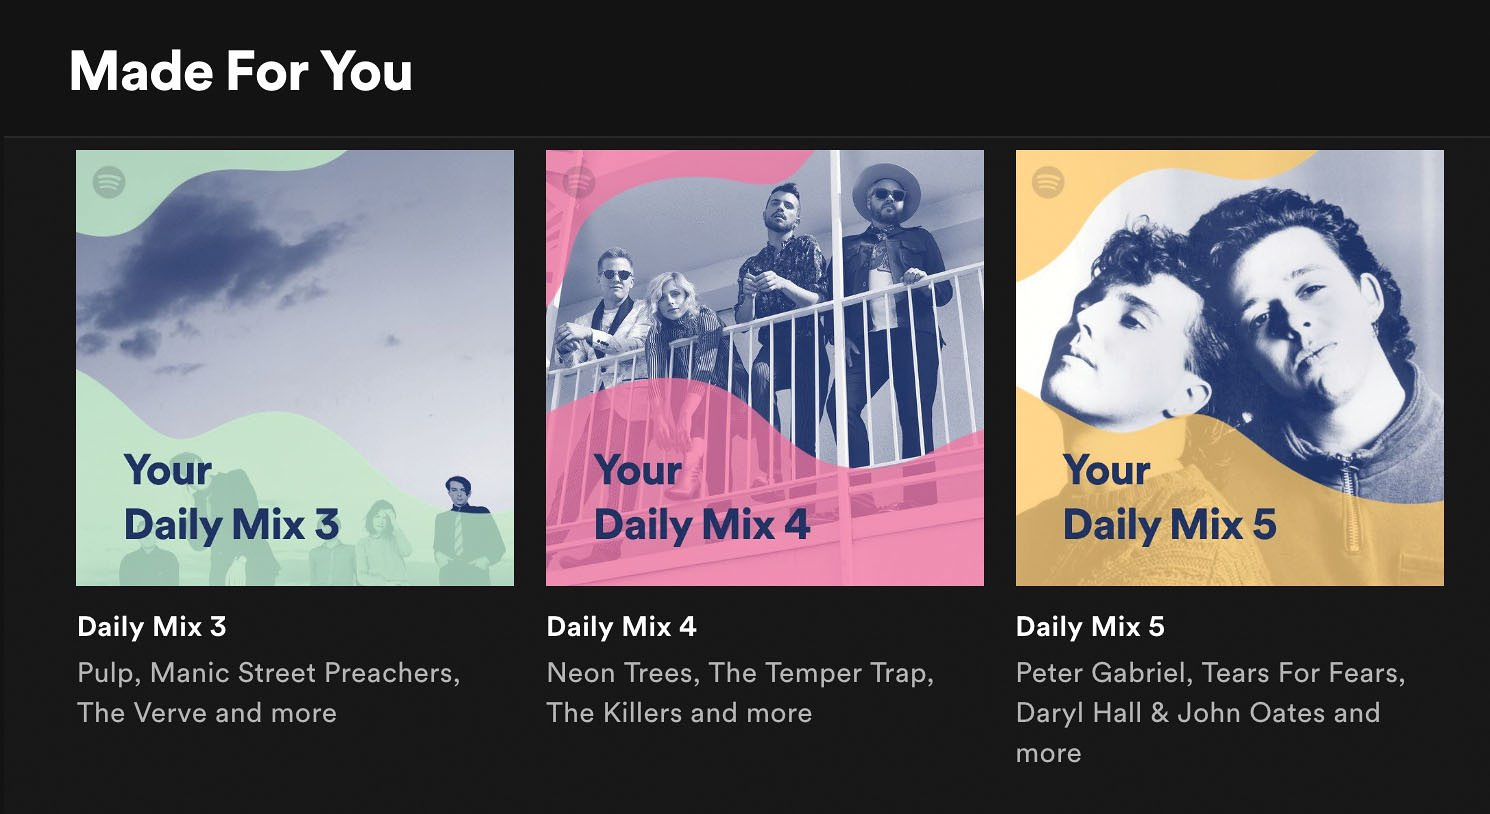 Spotify's Daily Mixes showcasing three distinct sets of musical styles based on the user's listening habits.